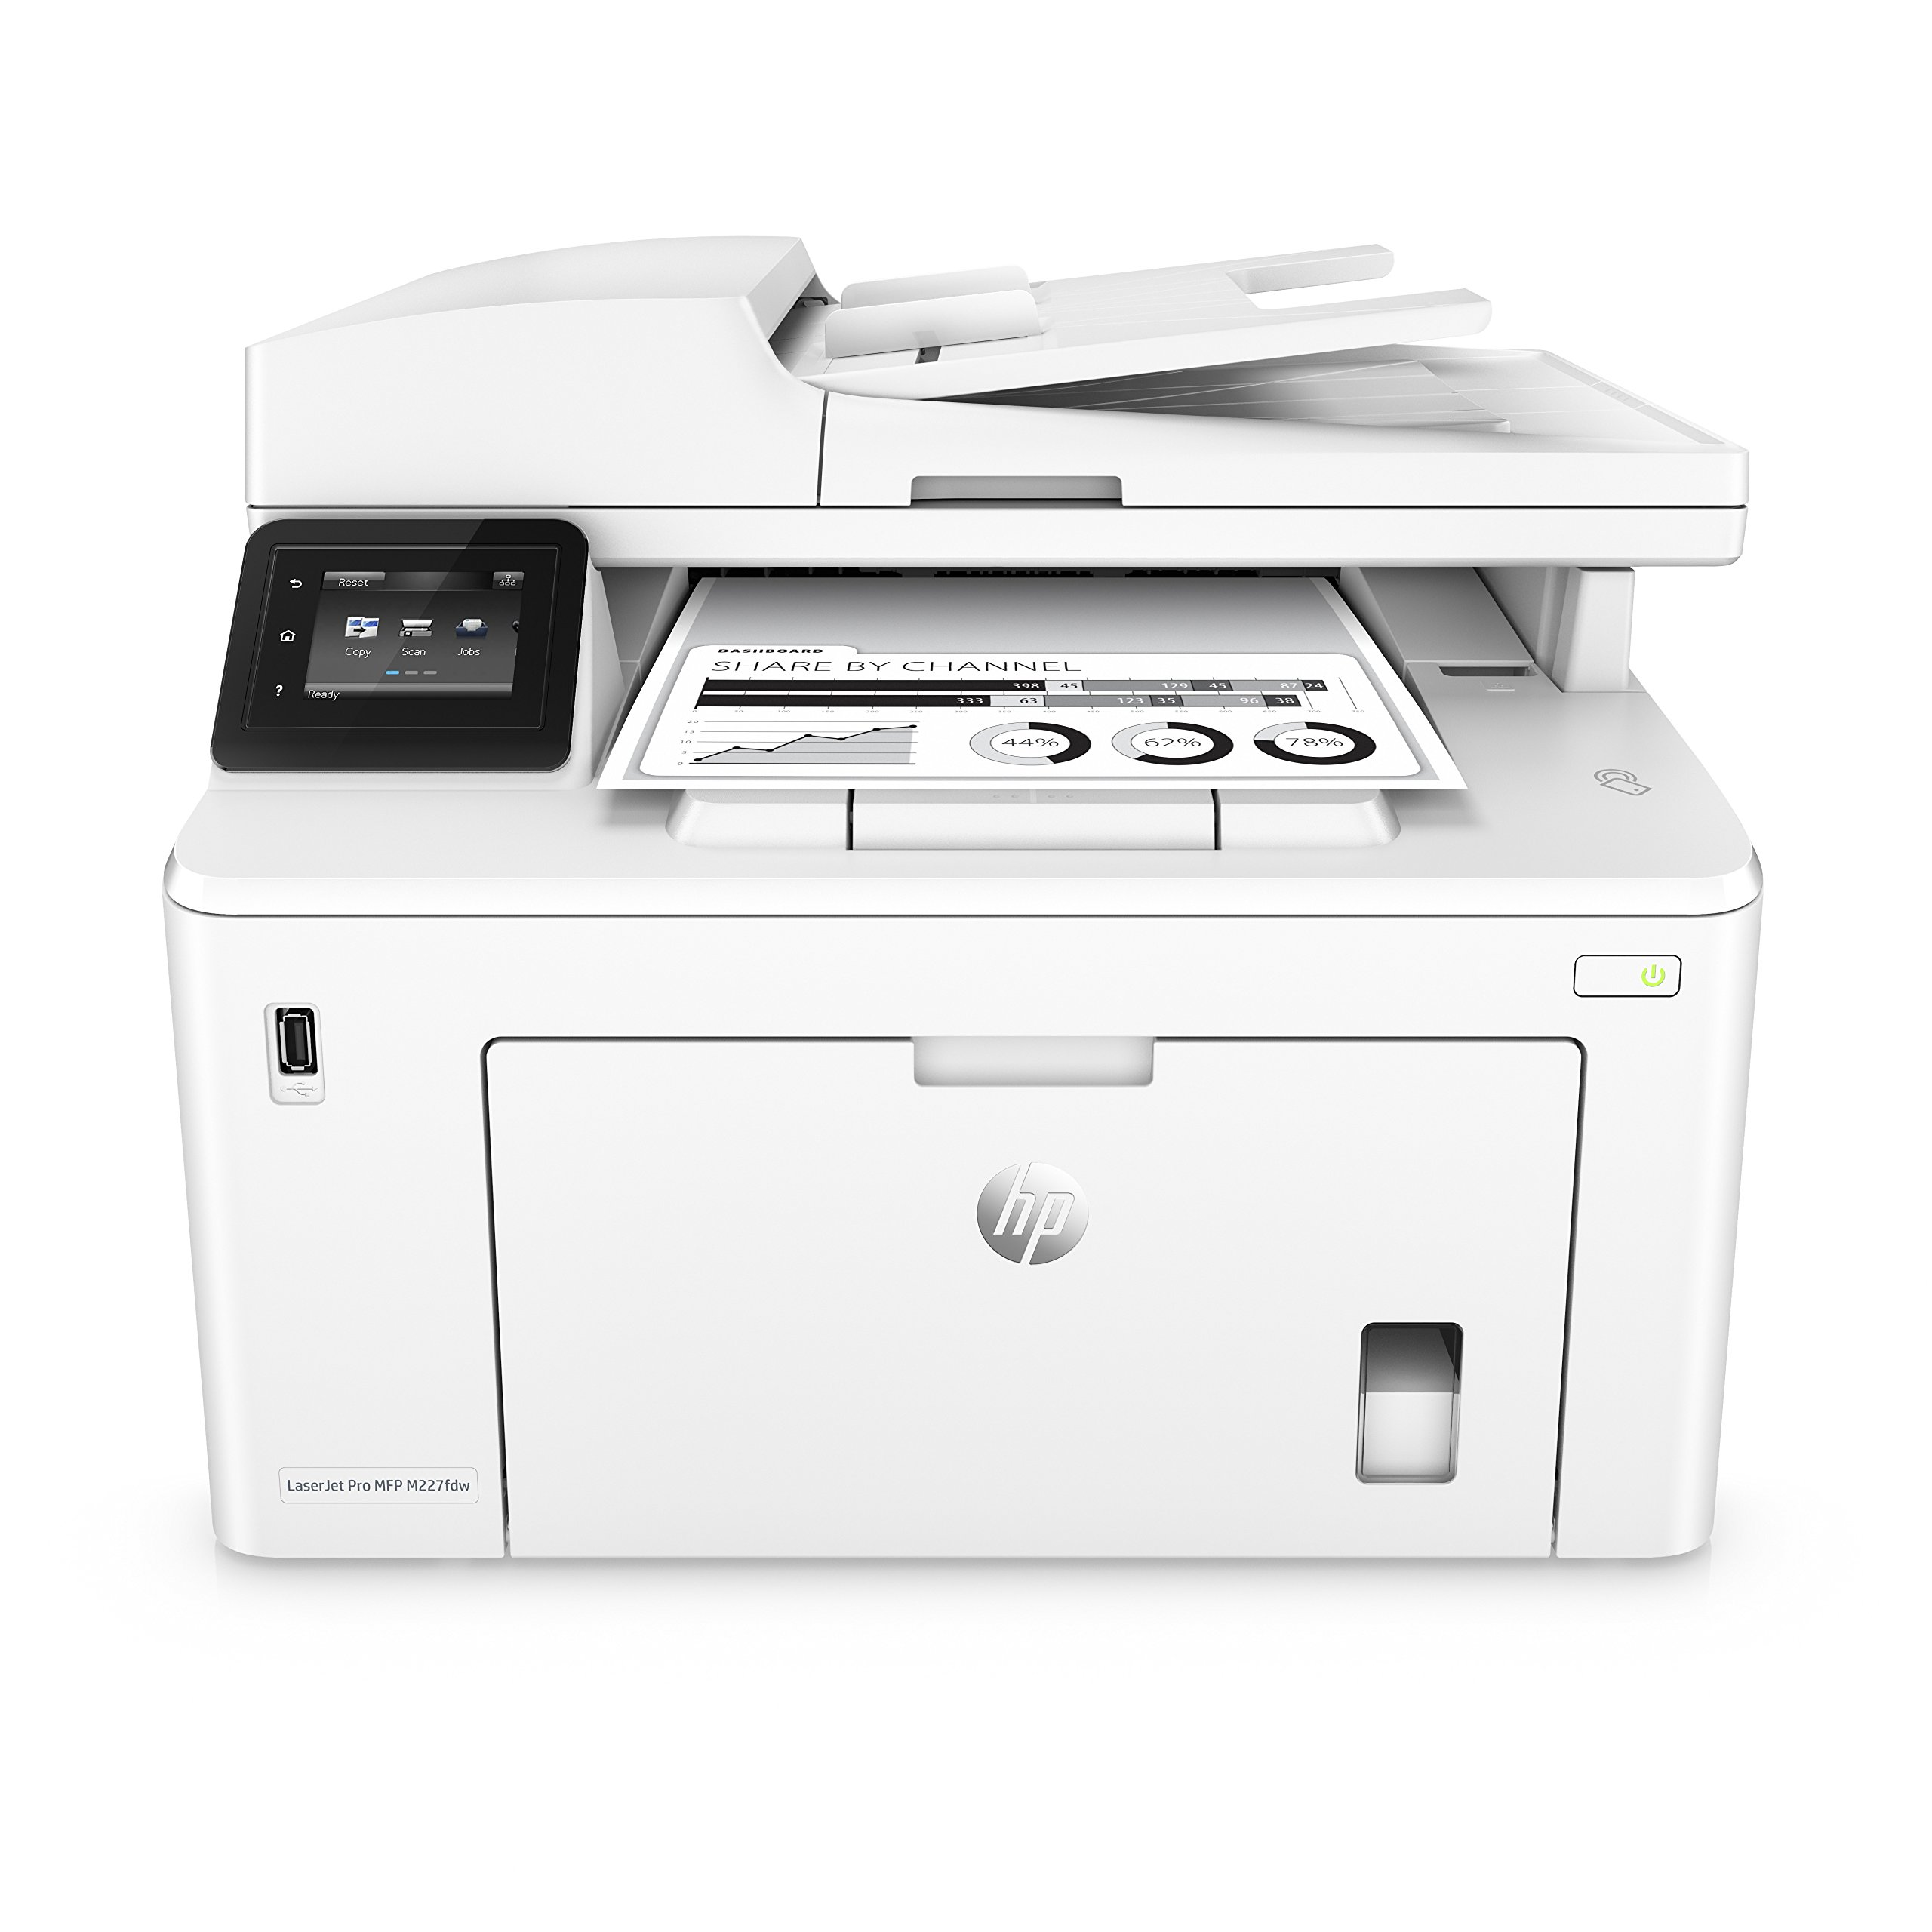 HP LaserJet Wireless Replenishment G3Q75A